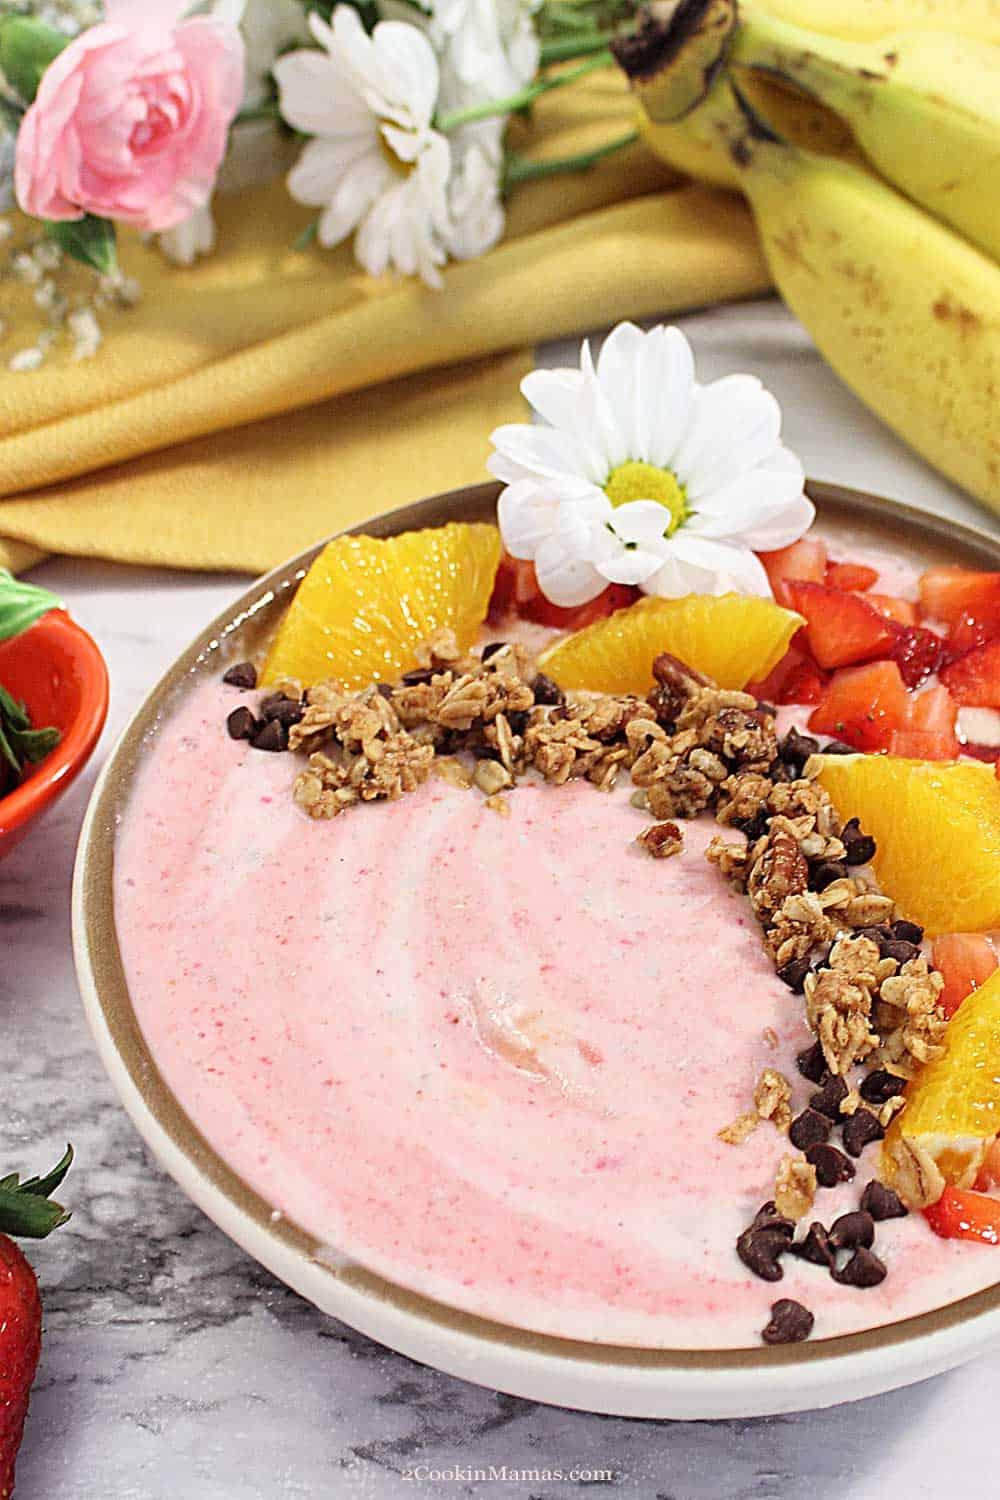 Strawberry Banana Smoothie Bowl tall